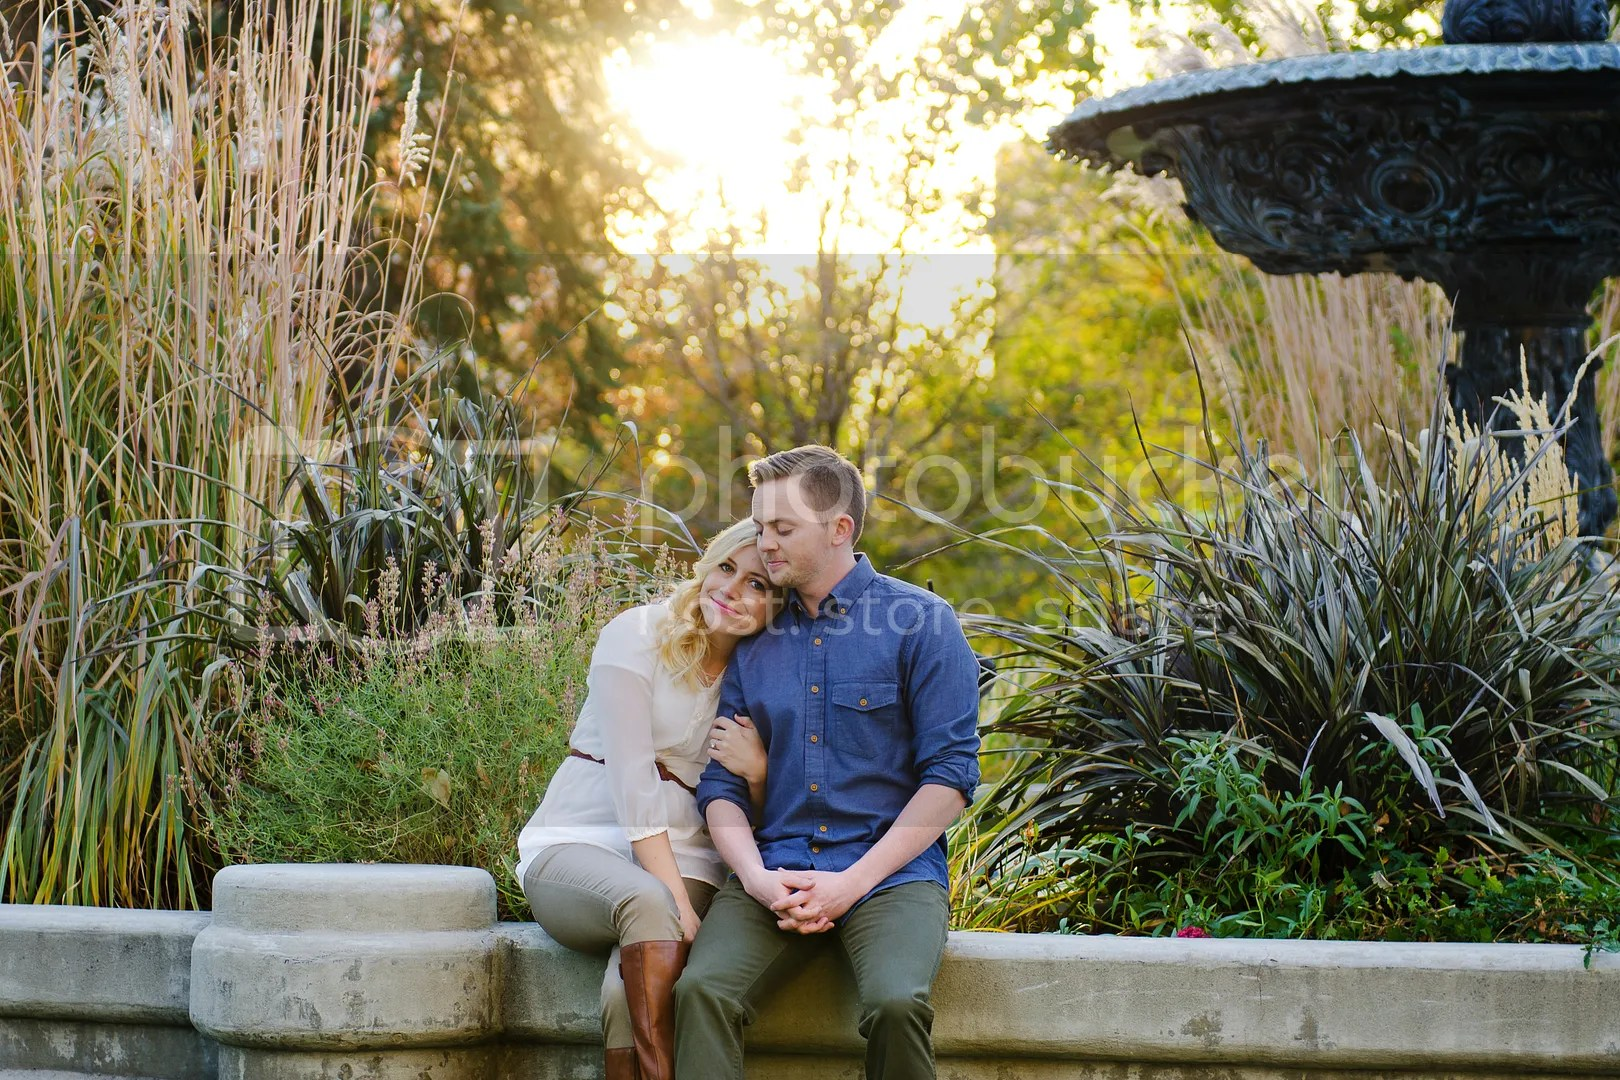 photo JandJengagements2_KaraSimmons_6_zpsx4kjmifo.jpg